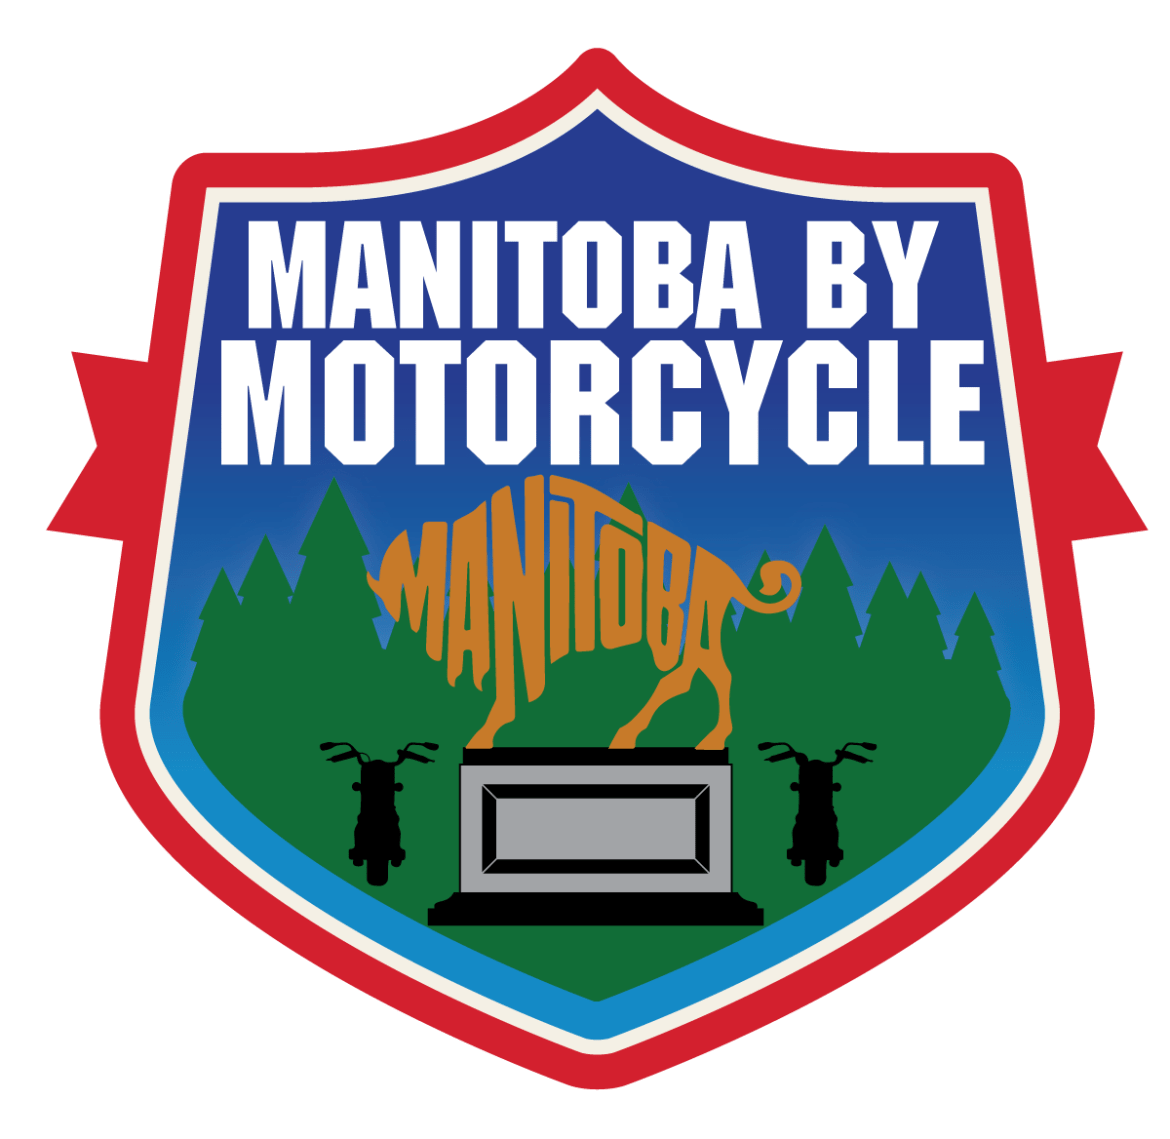 Manitoba by Motorcycle Monuments Patch